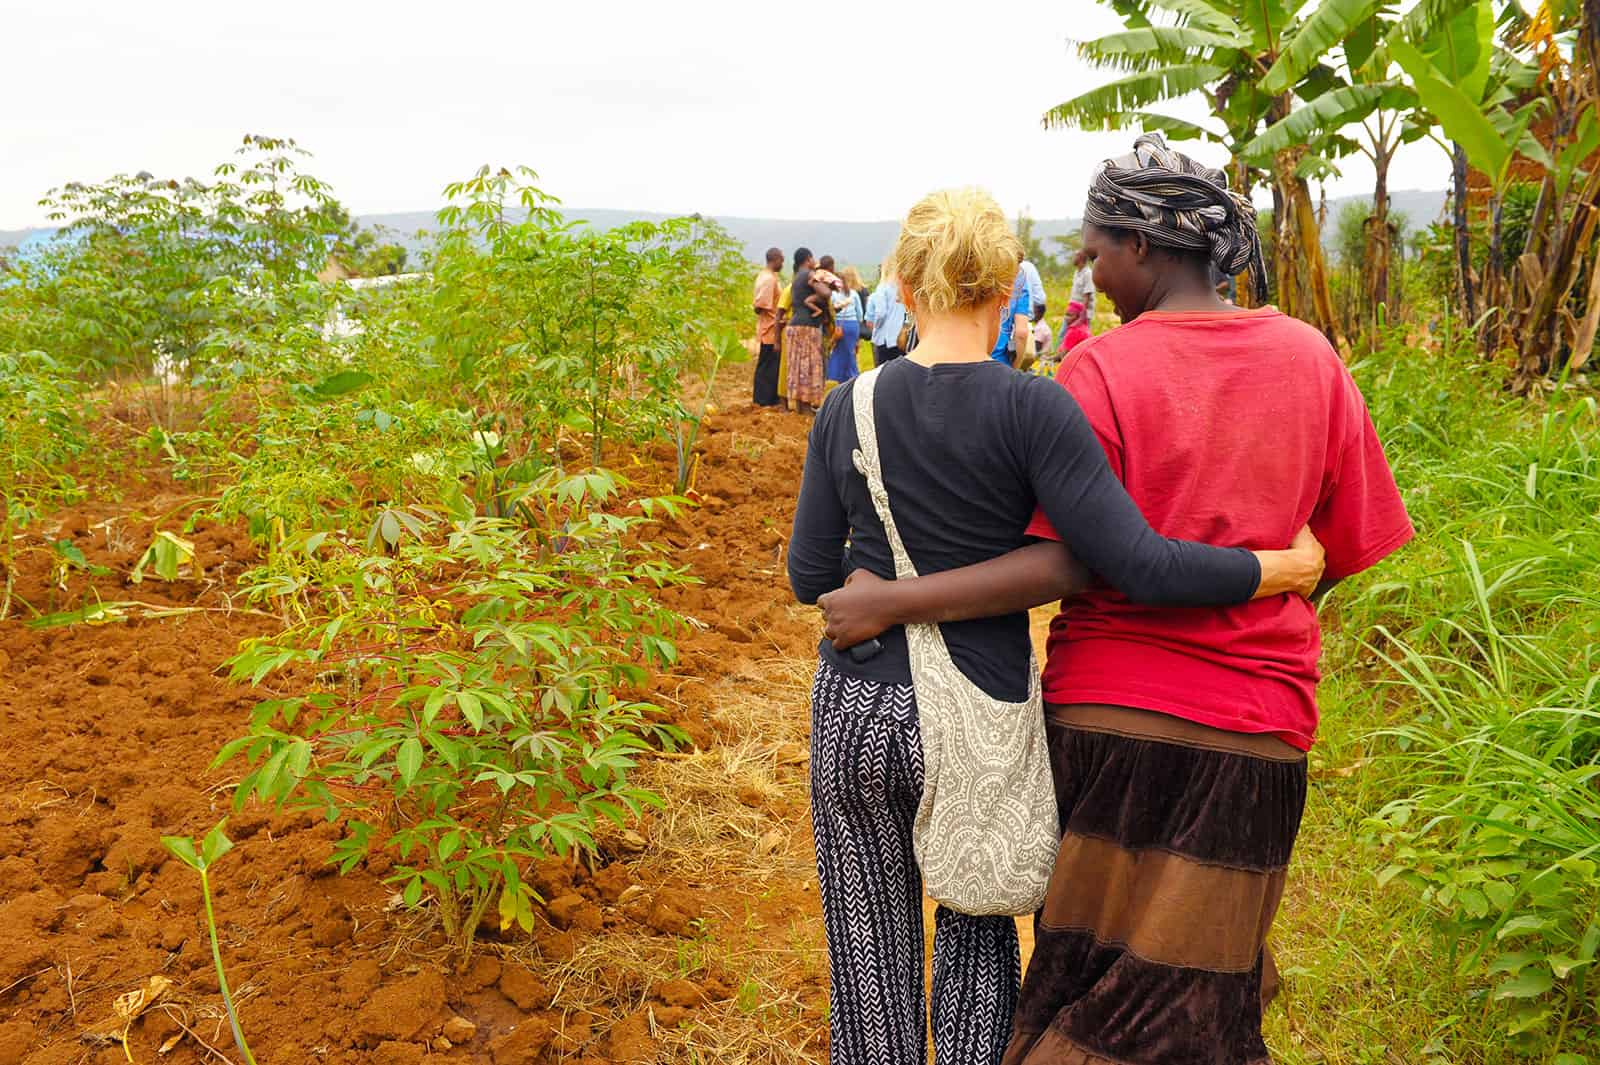 Two women walk down a dirt path together with their arms around one another.